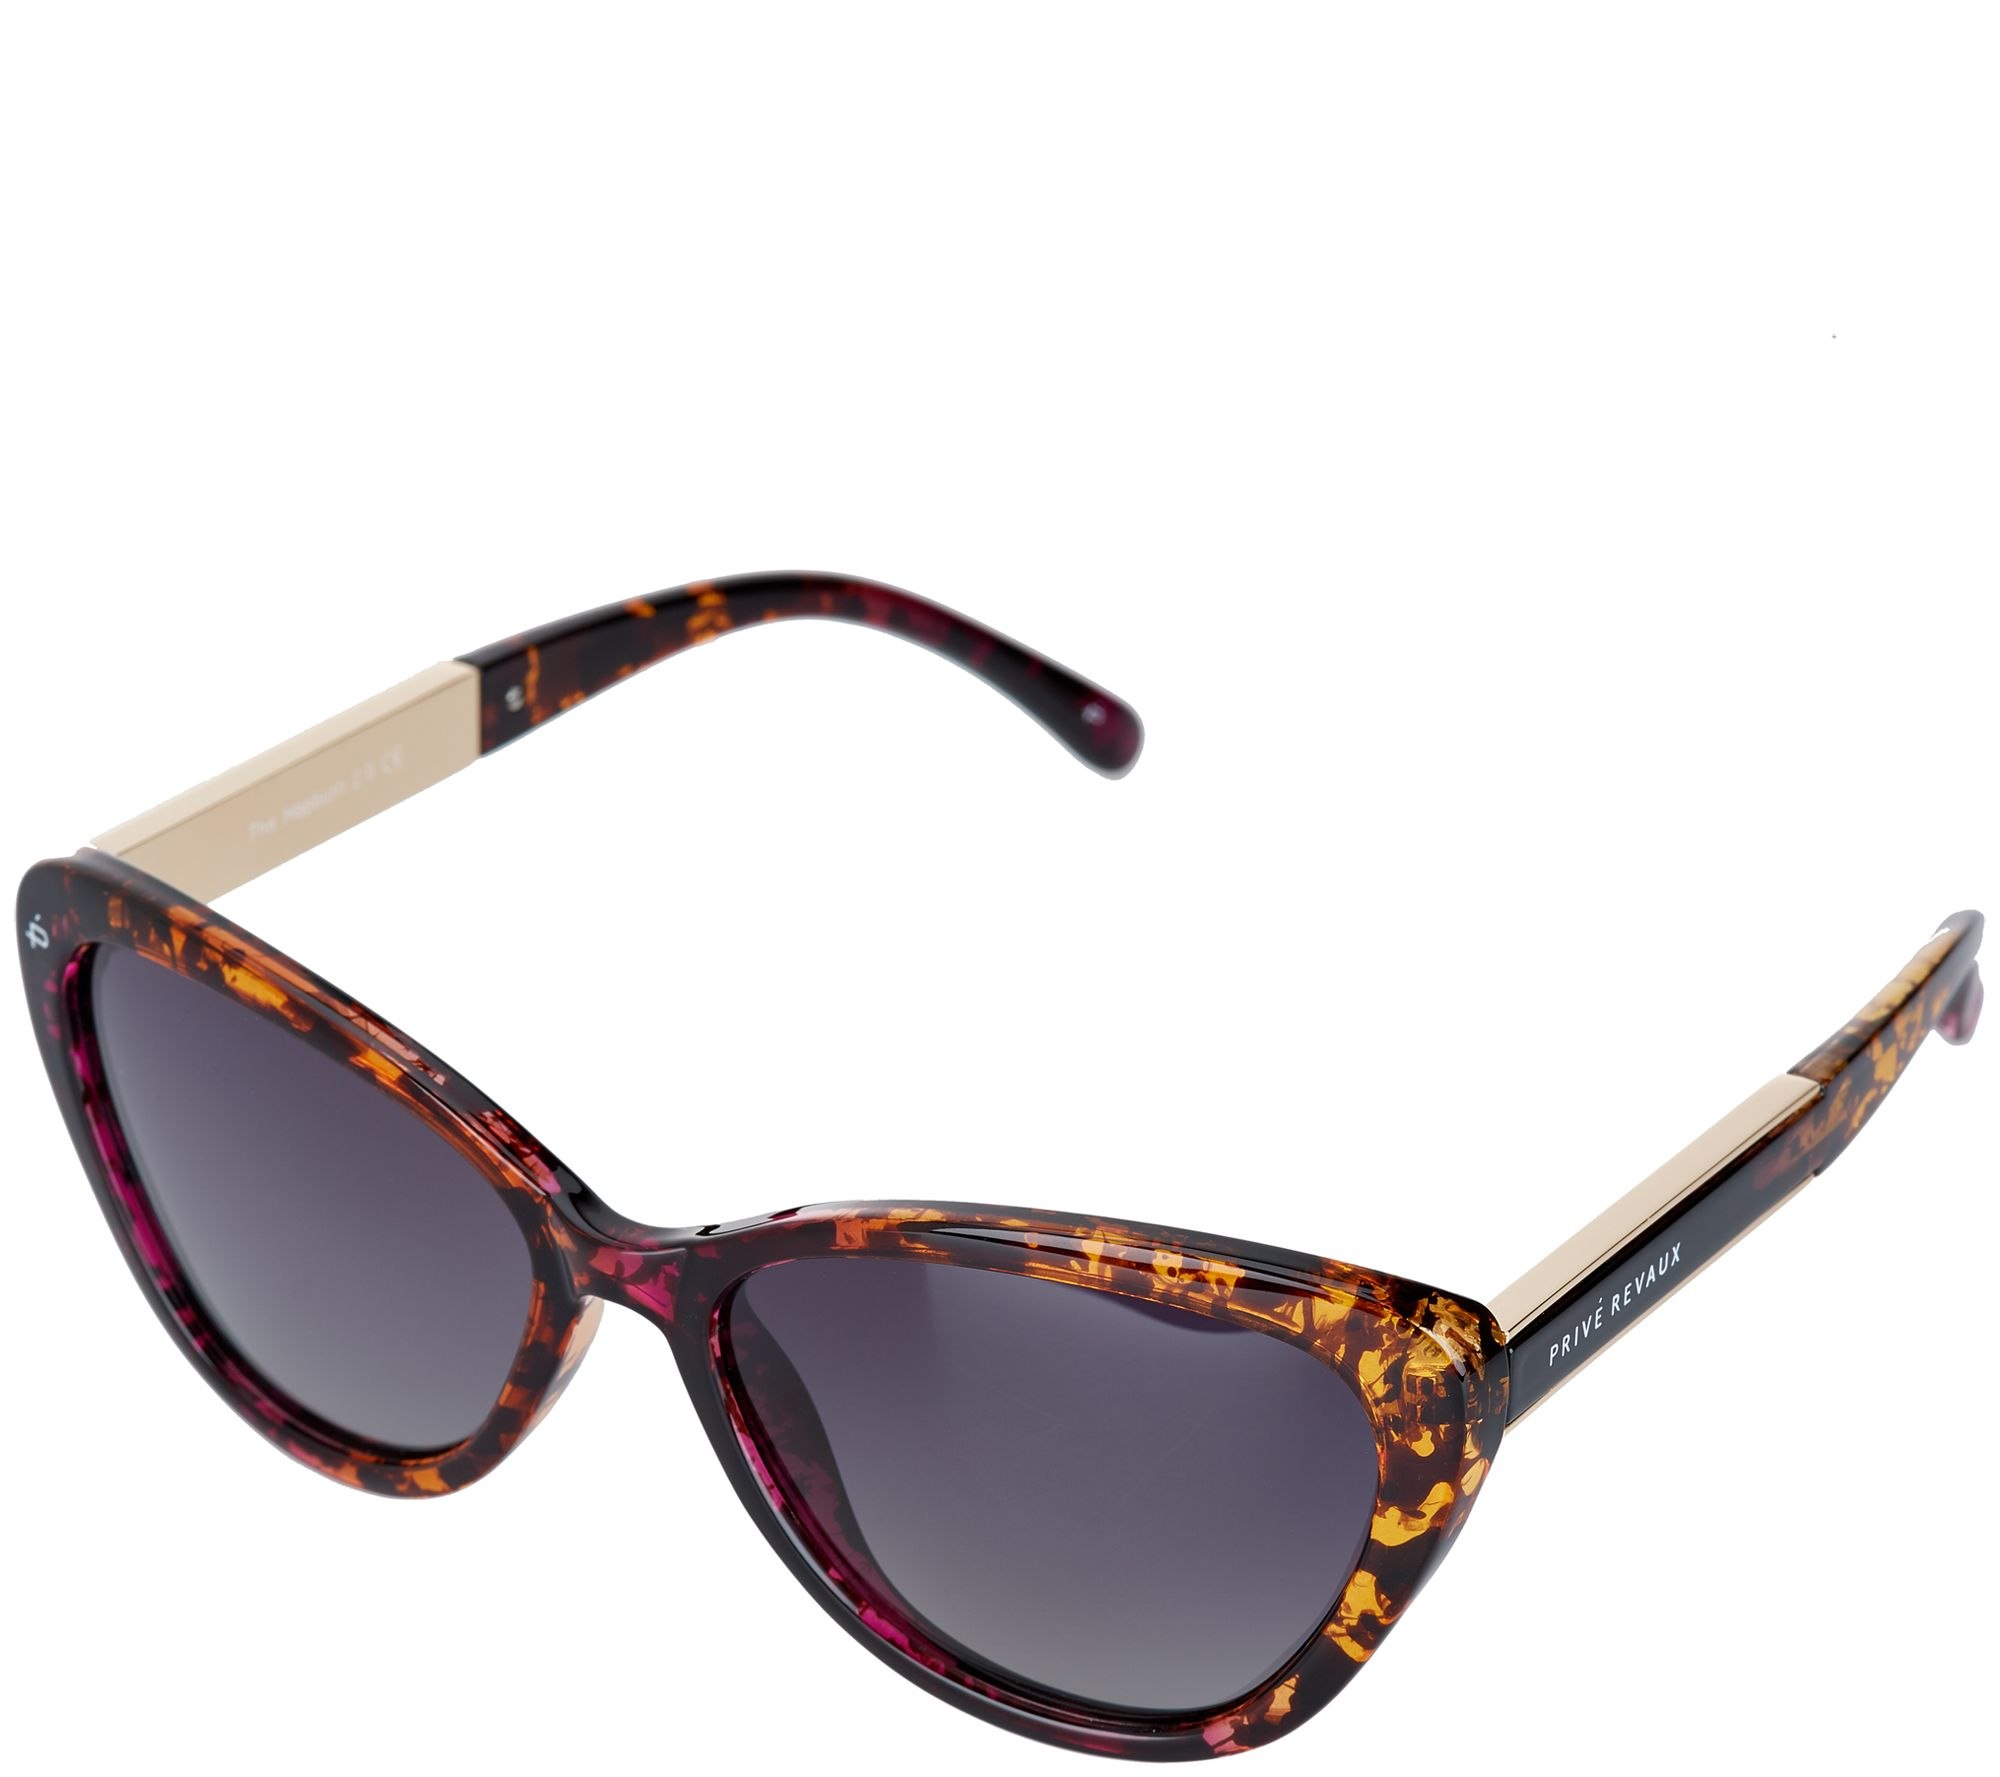 177d816ad724 Prive Revaux The Hepburn 2.0 Cat-Eye Polarized Sunglasses - Page 1 — QVC.com